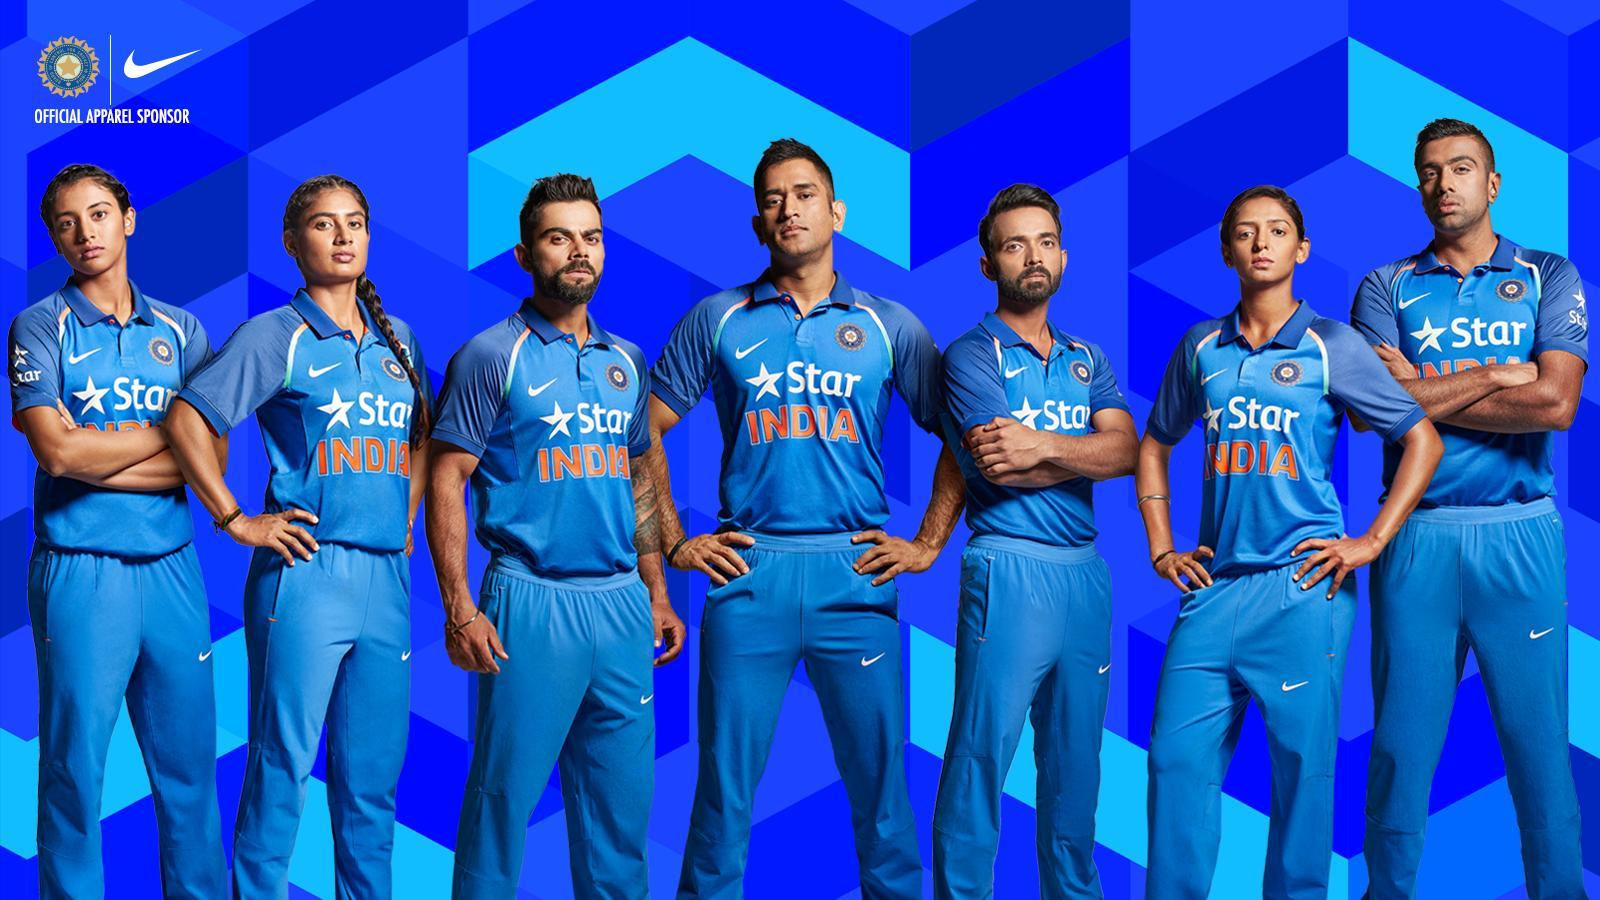 Indian Cricket Team for Android